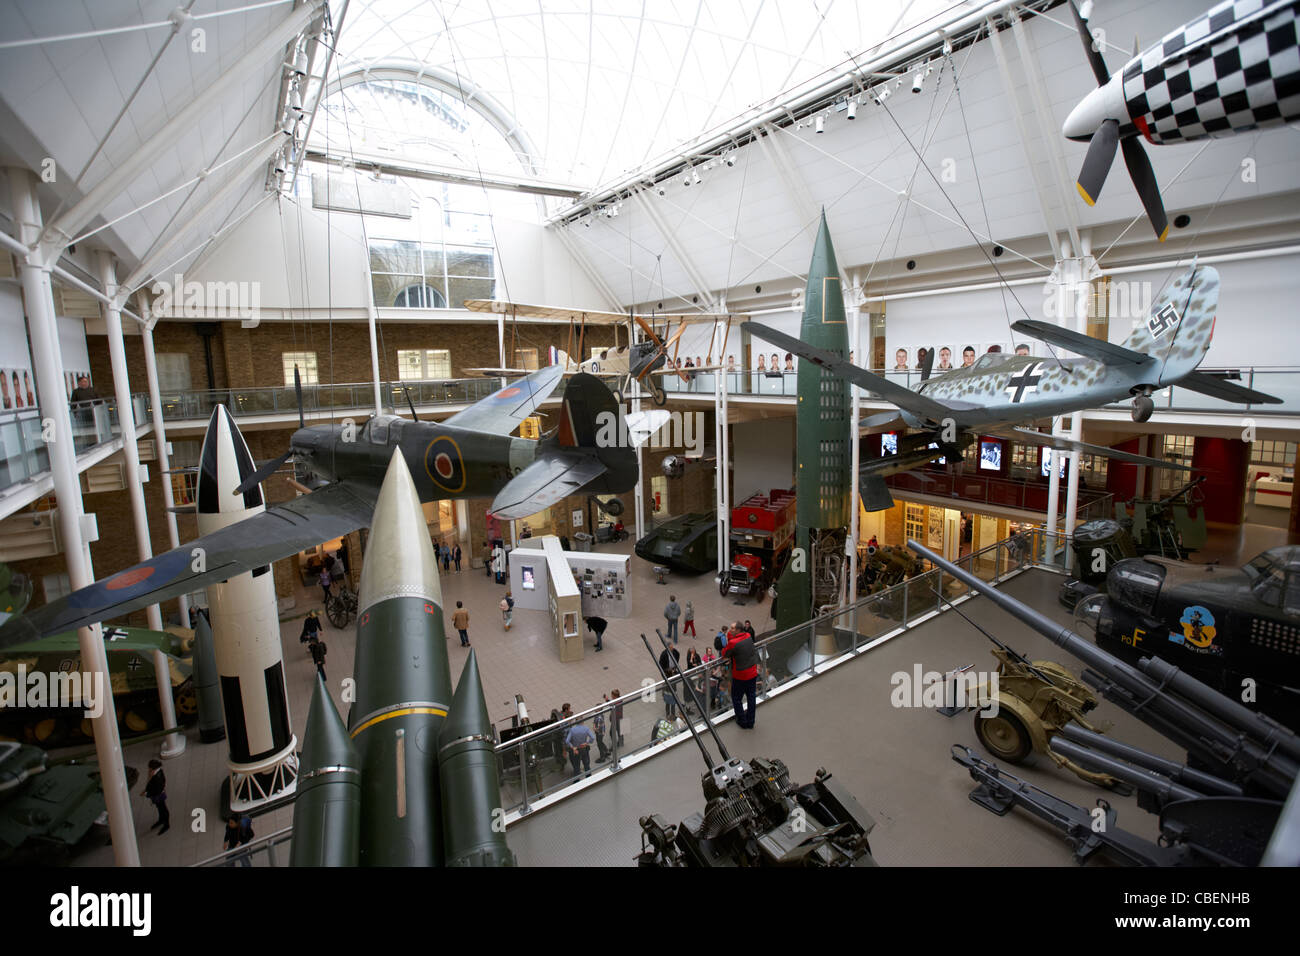 the imperial war museum london england uk united kingdom - Stock Image